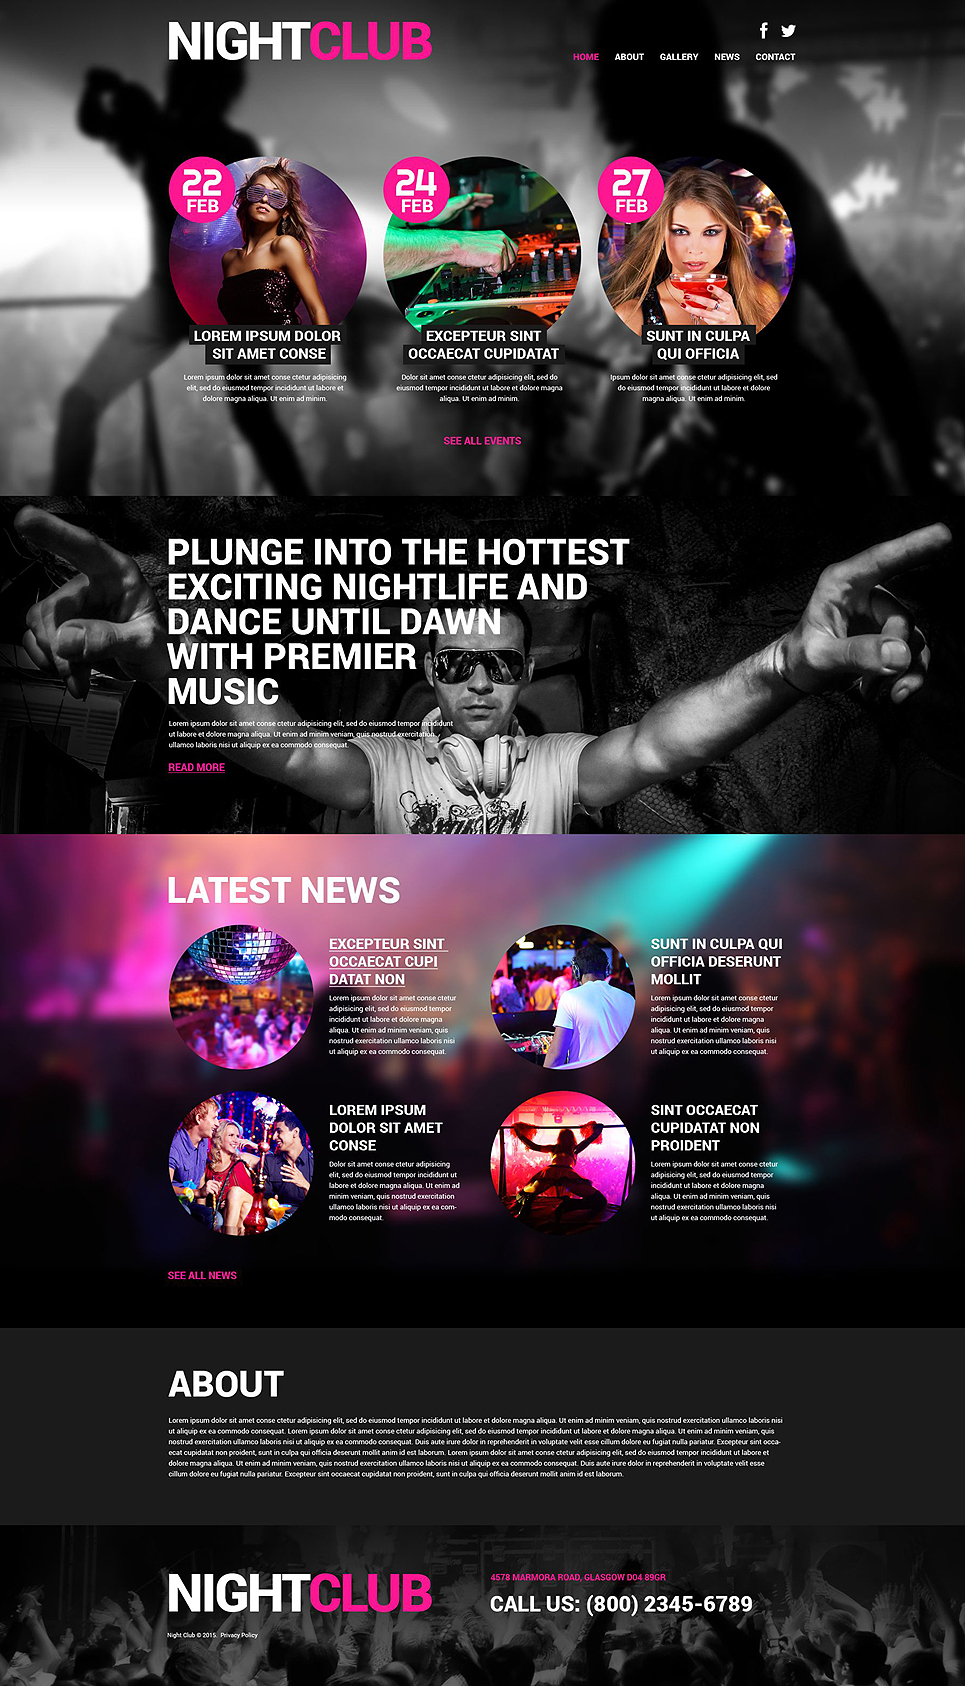 Night Club Euphoria (website theme) Item Picture